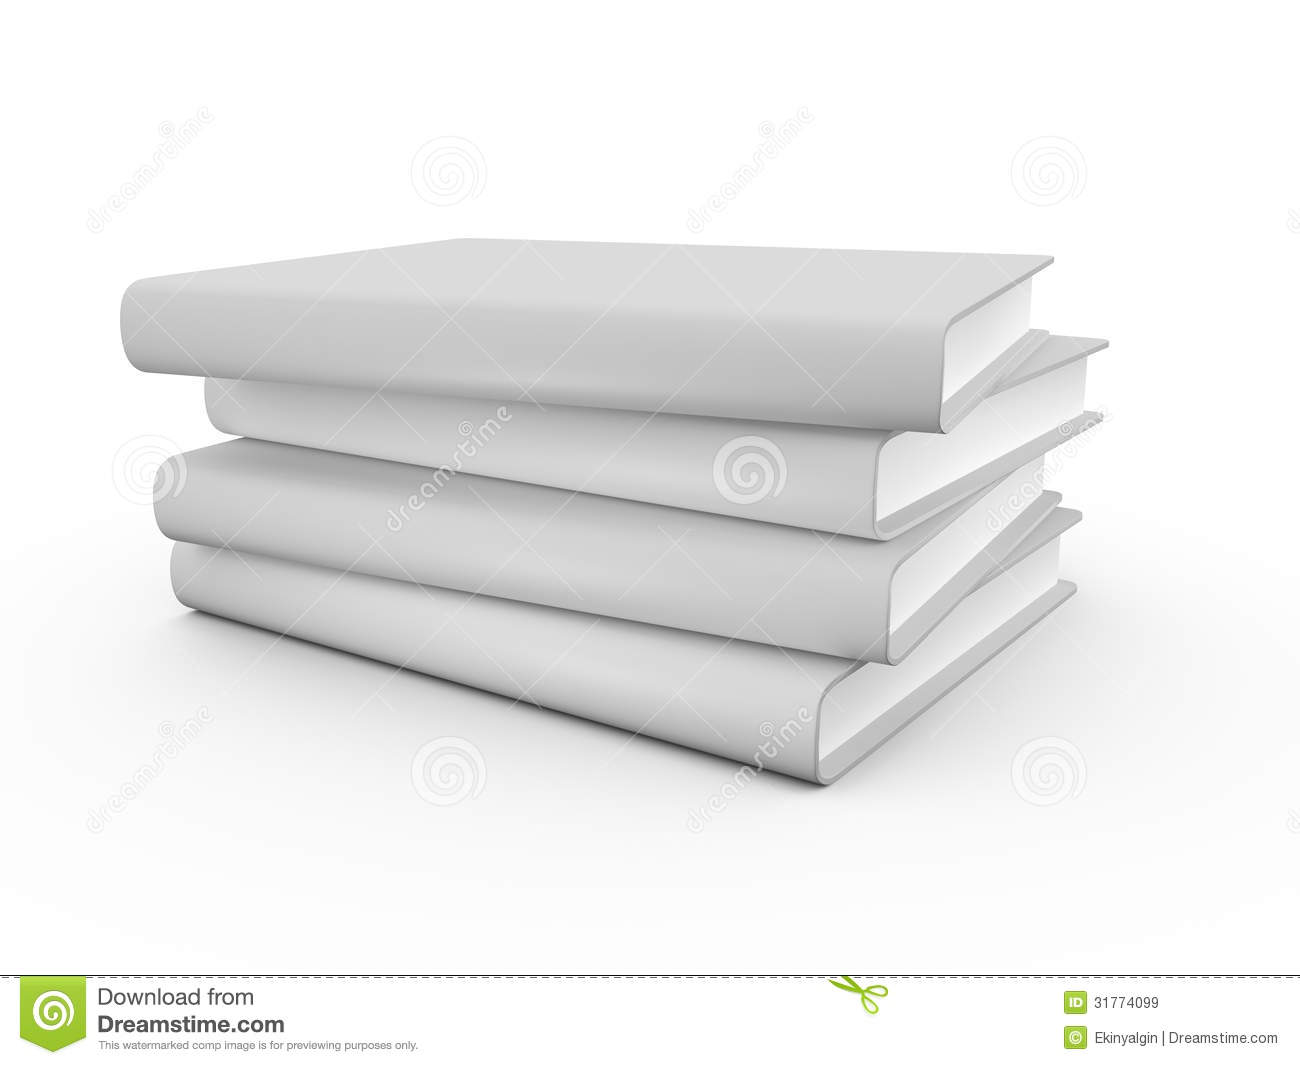 Book Cover Sleeve Template : Realistic blank book cover royalty free stock images